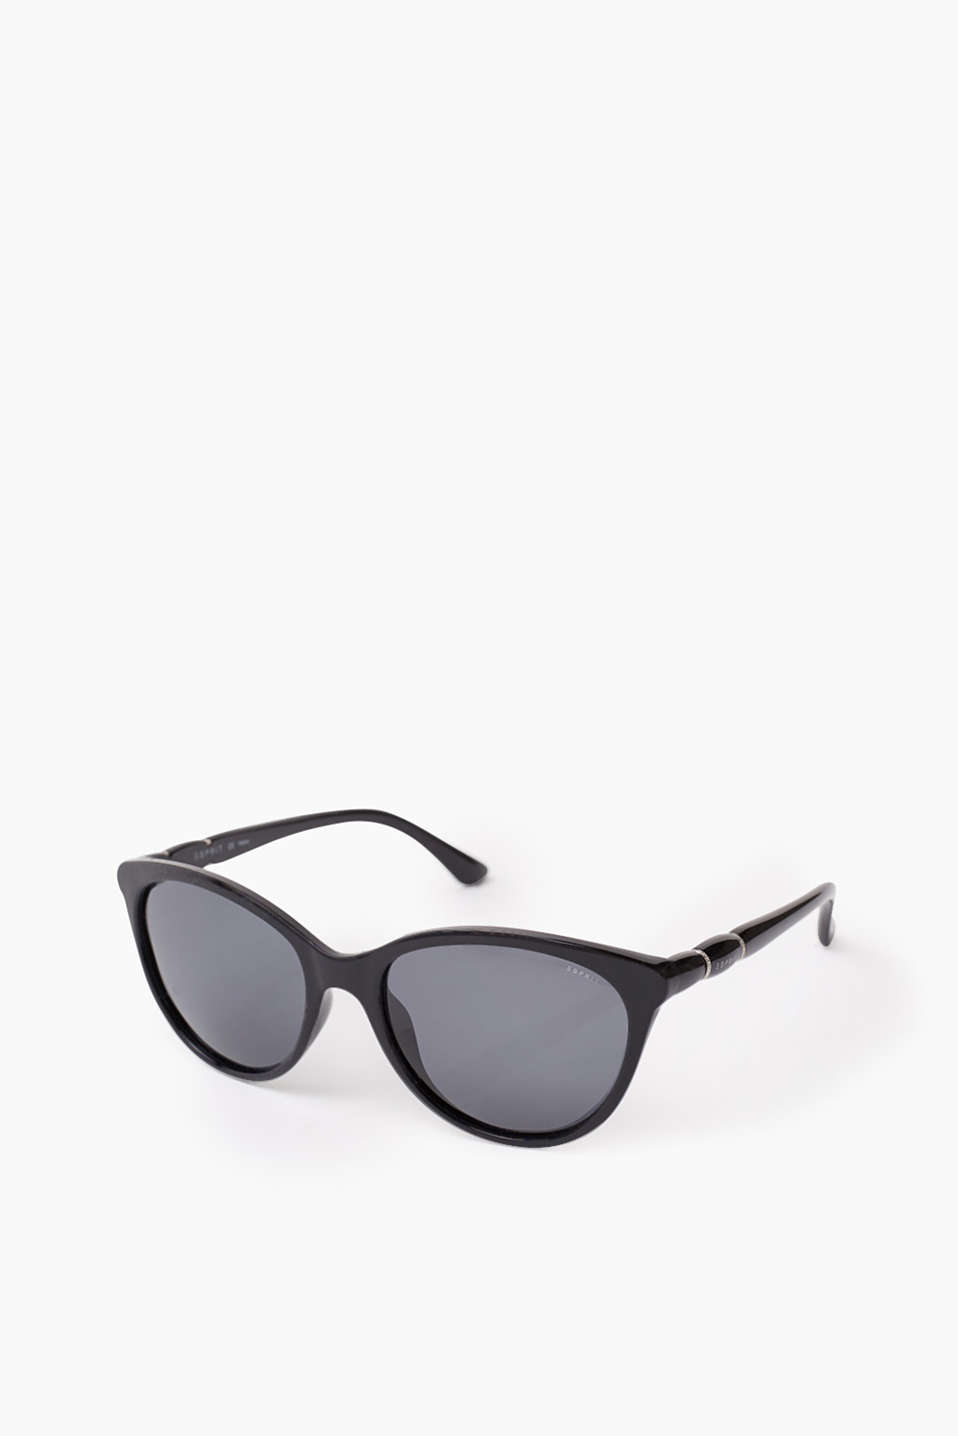 Sunglasses in a subtle cat-eye design with decorative metal rings on the temples